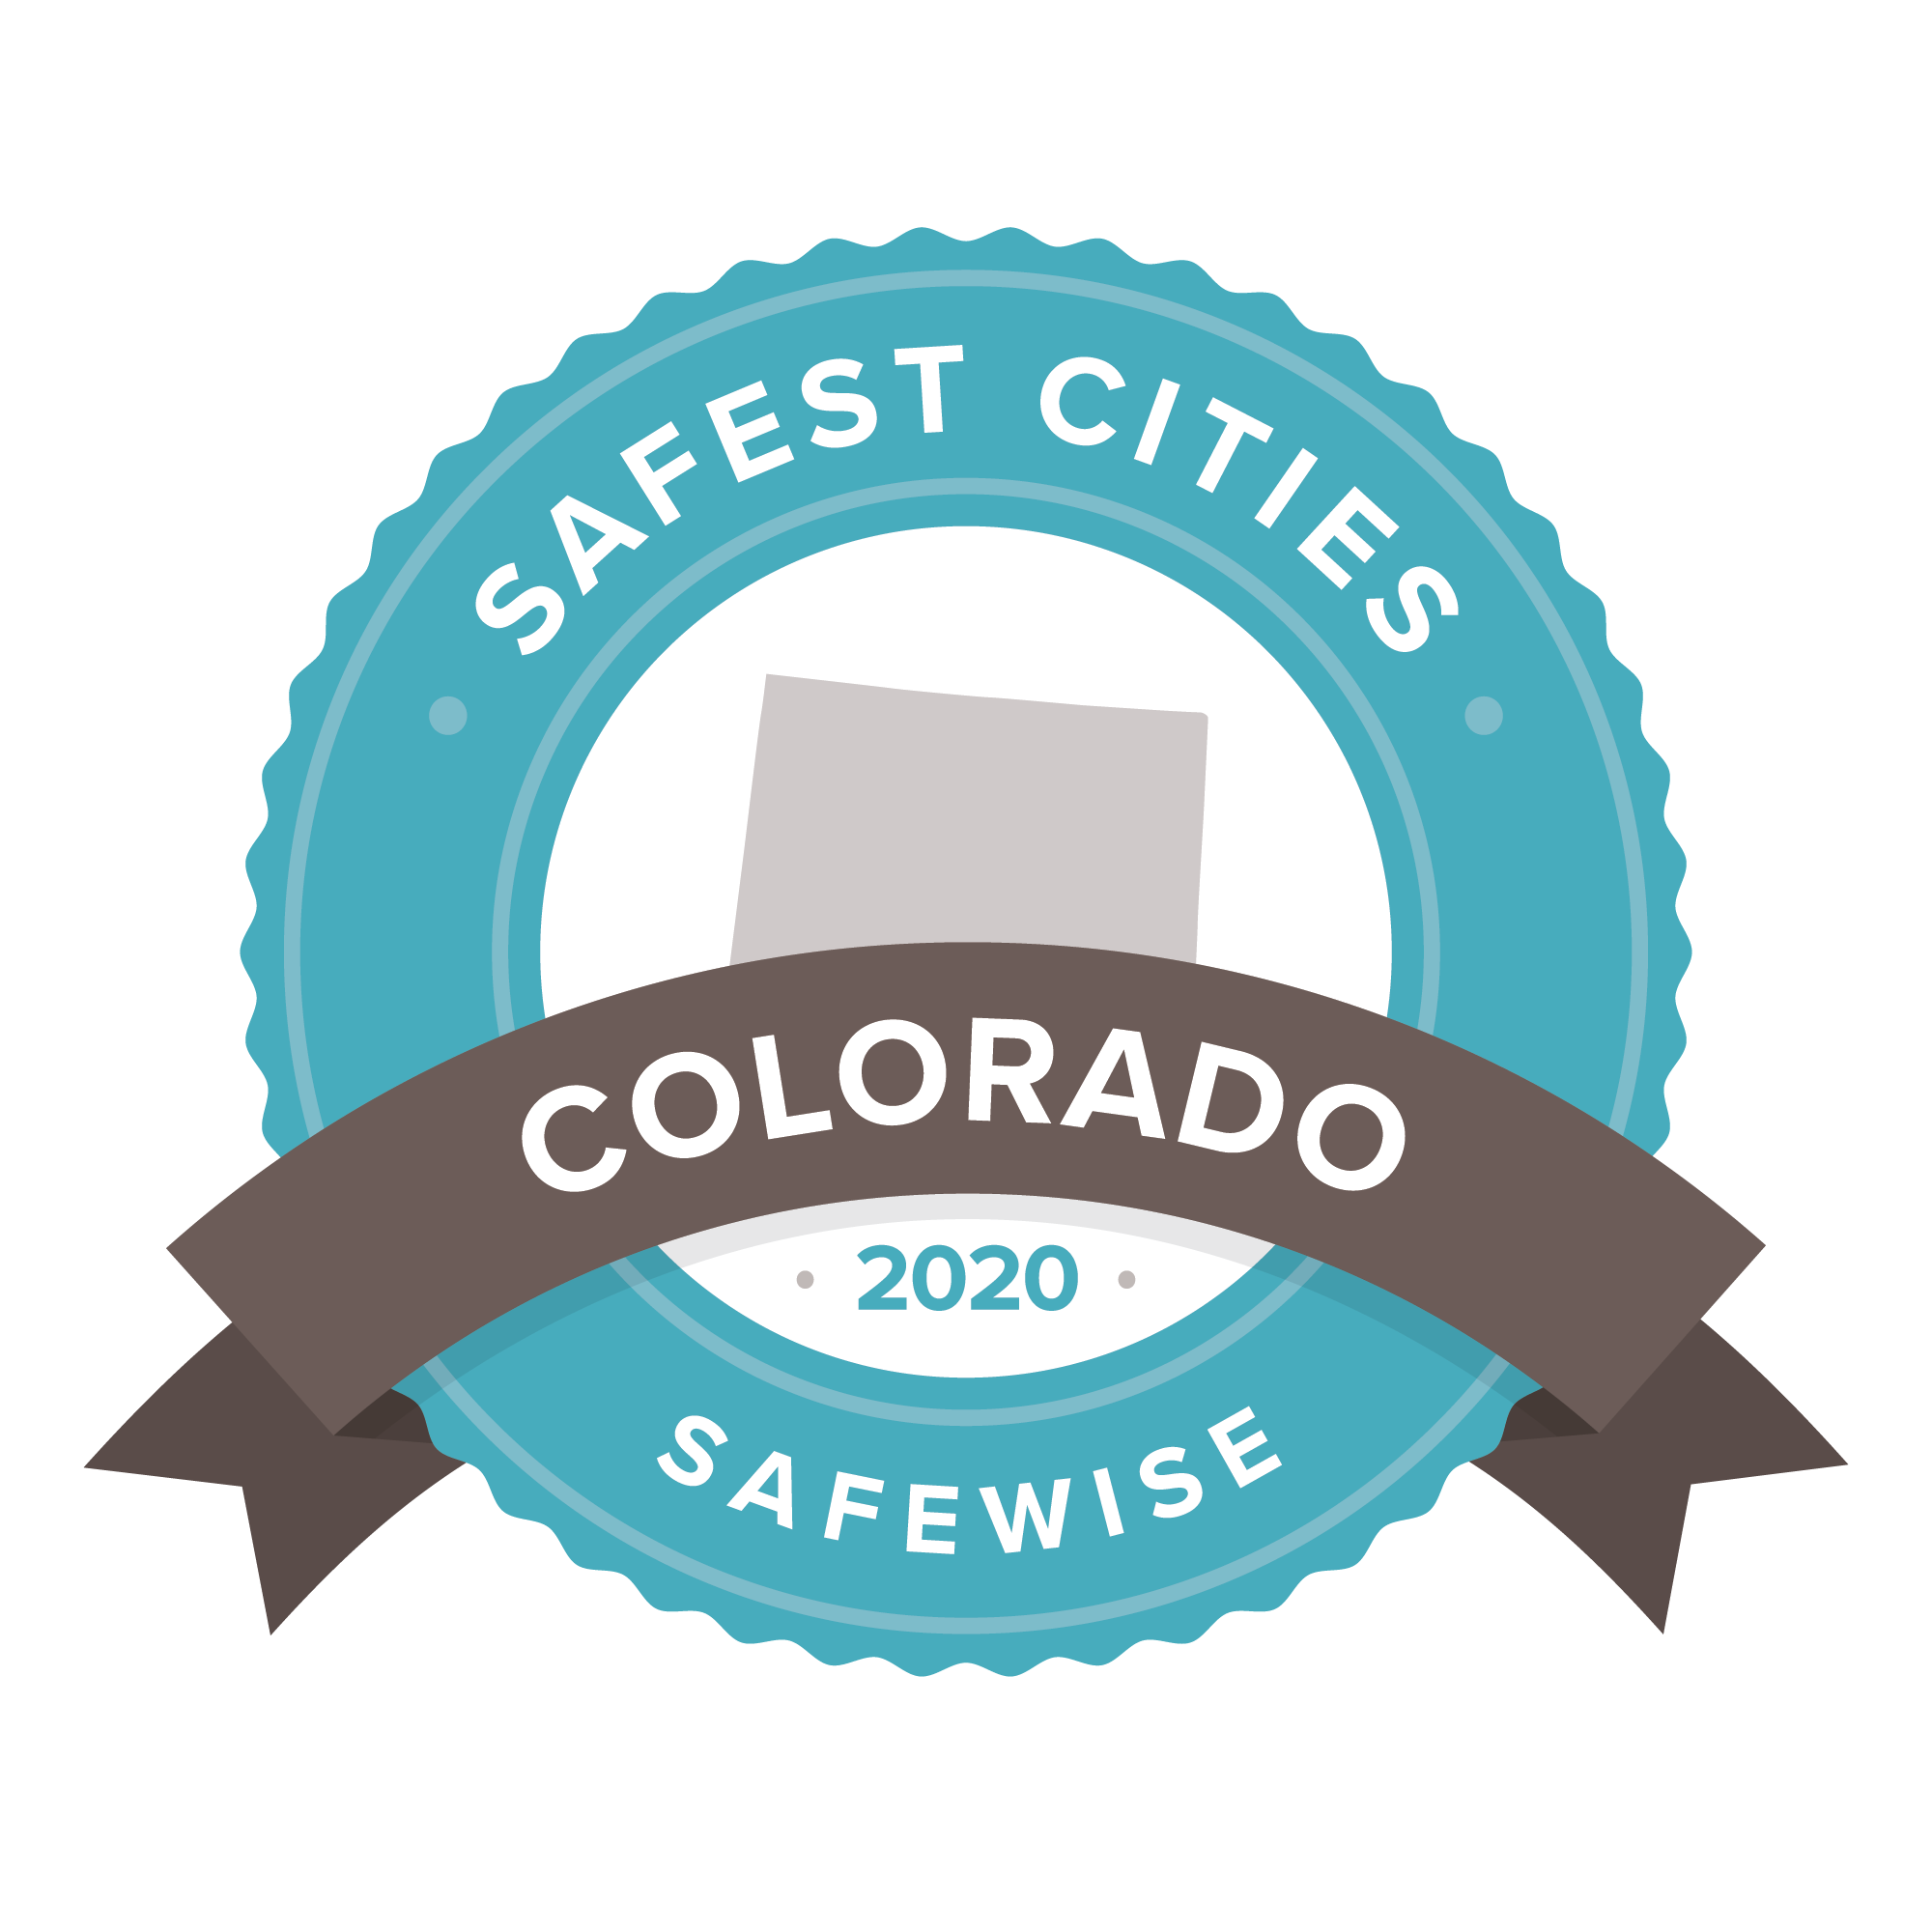 Colorado safest cities badge